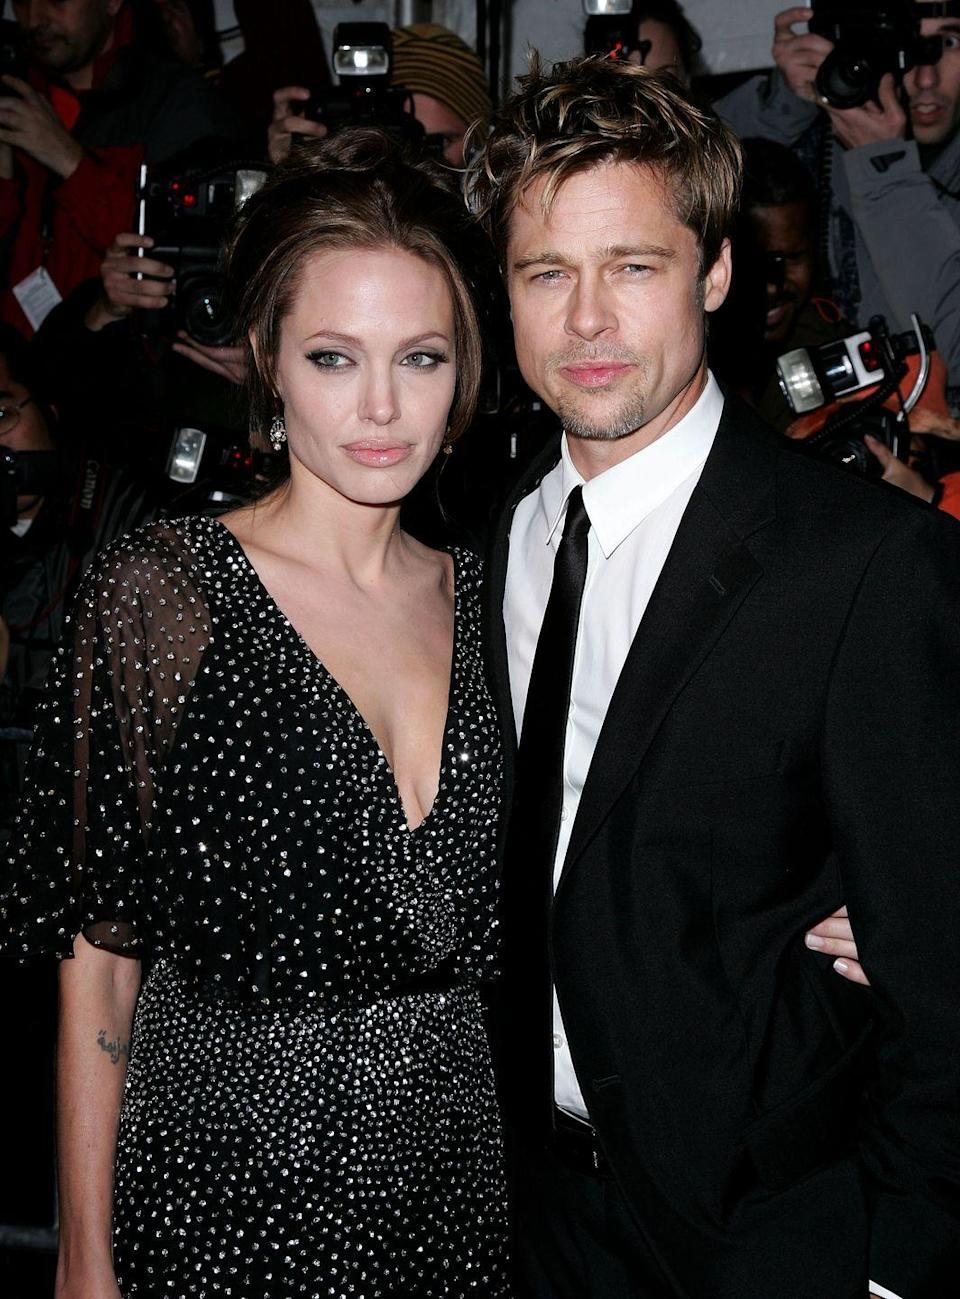 """<p>In 2005, Brad Pitt starred in <em><a href=""""https://www.imdb.com/title/tt0356910/?ref_=nm_flmg_act_30"""" rel=""""nofollow noopener"""" target=""""_blank"""" data-ylk=""""slk:Mr. & Mrs. Smith"""" class=""""link rapid-noclick-resp"""">Mr. & Mrs. Smith</a></em>, an action movie, with Angelina Jolie and, you guessed it — the costars <a href=""""https://www.redbookmag.com/love-sex/g4374/celebrity-couples-who-fell-in-love-onscreen/"""" rel=""""nofollow noopener"""" target=""""_blank"""" data-ylk=""""slk:fell in love on set"""" class=""""link rapid-noclick-resp"""">fell in love on set</a>. Aniston and Pitt divorced shortly thereafter.</p>"""